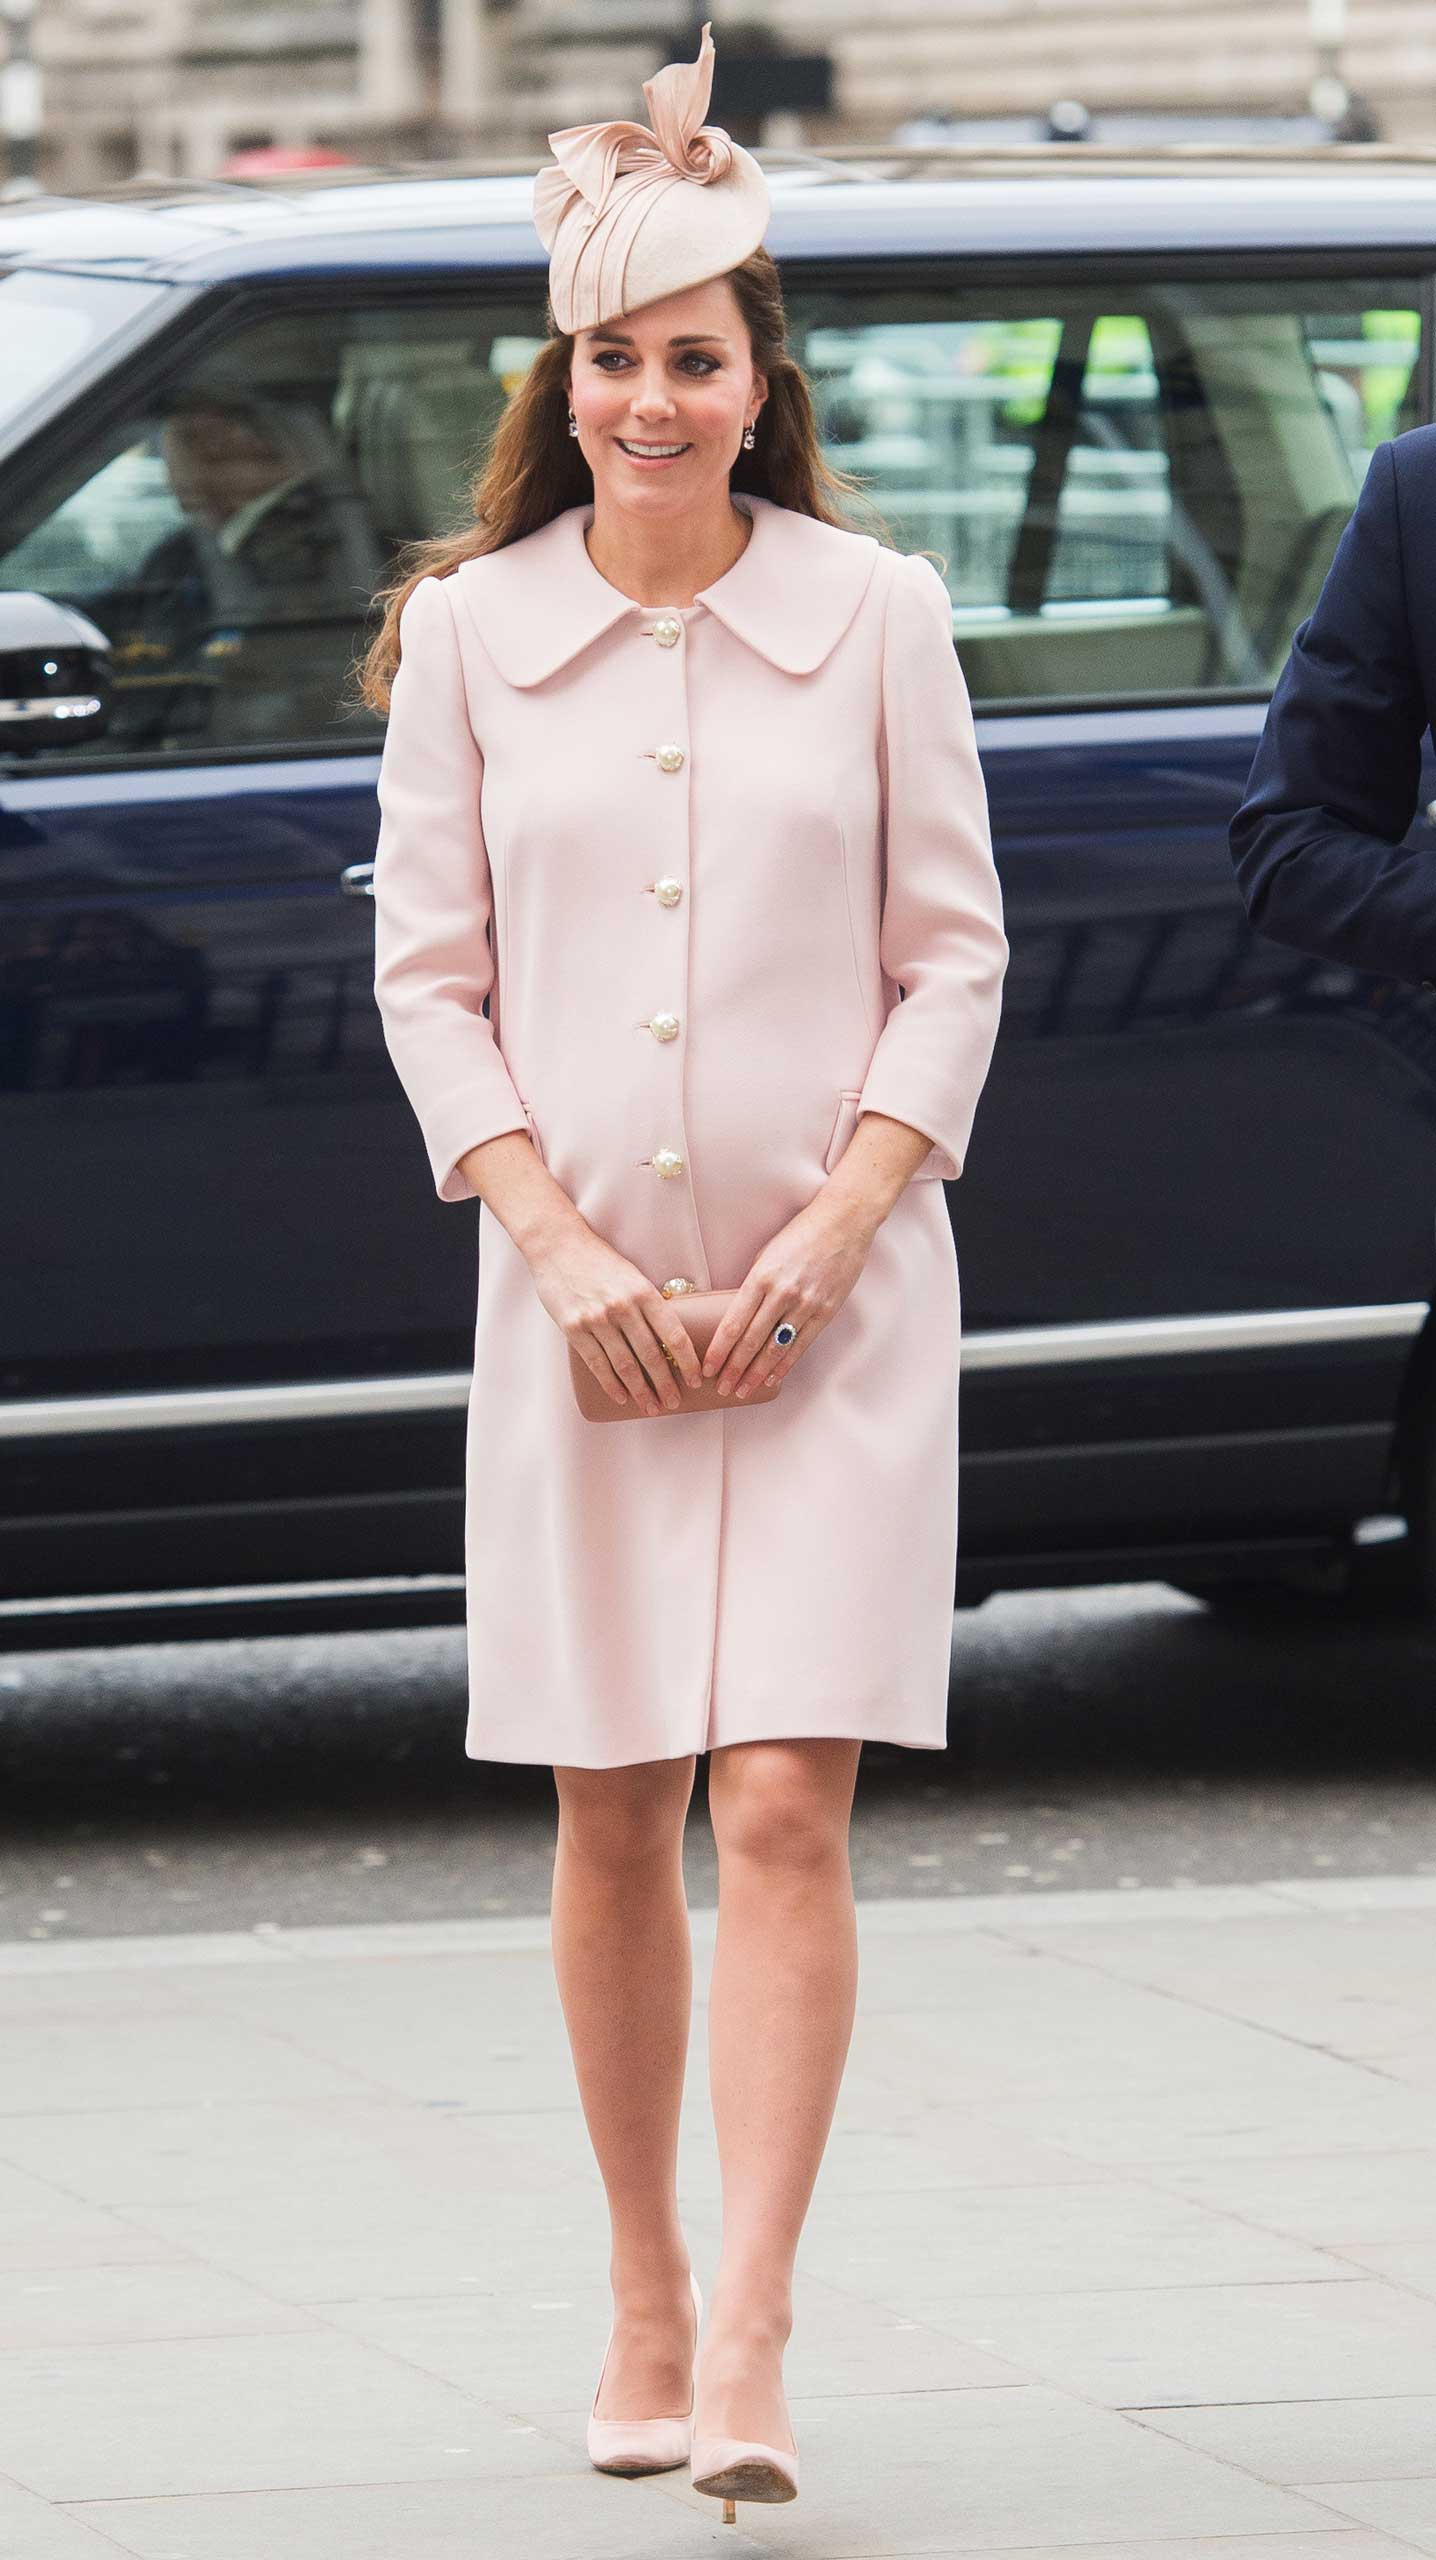 Catherine Duchess of Cambridge attends the Commonwealth Service at Westminster Abbey on March 9, 2015 in London.